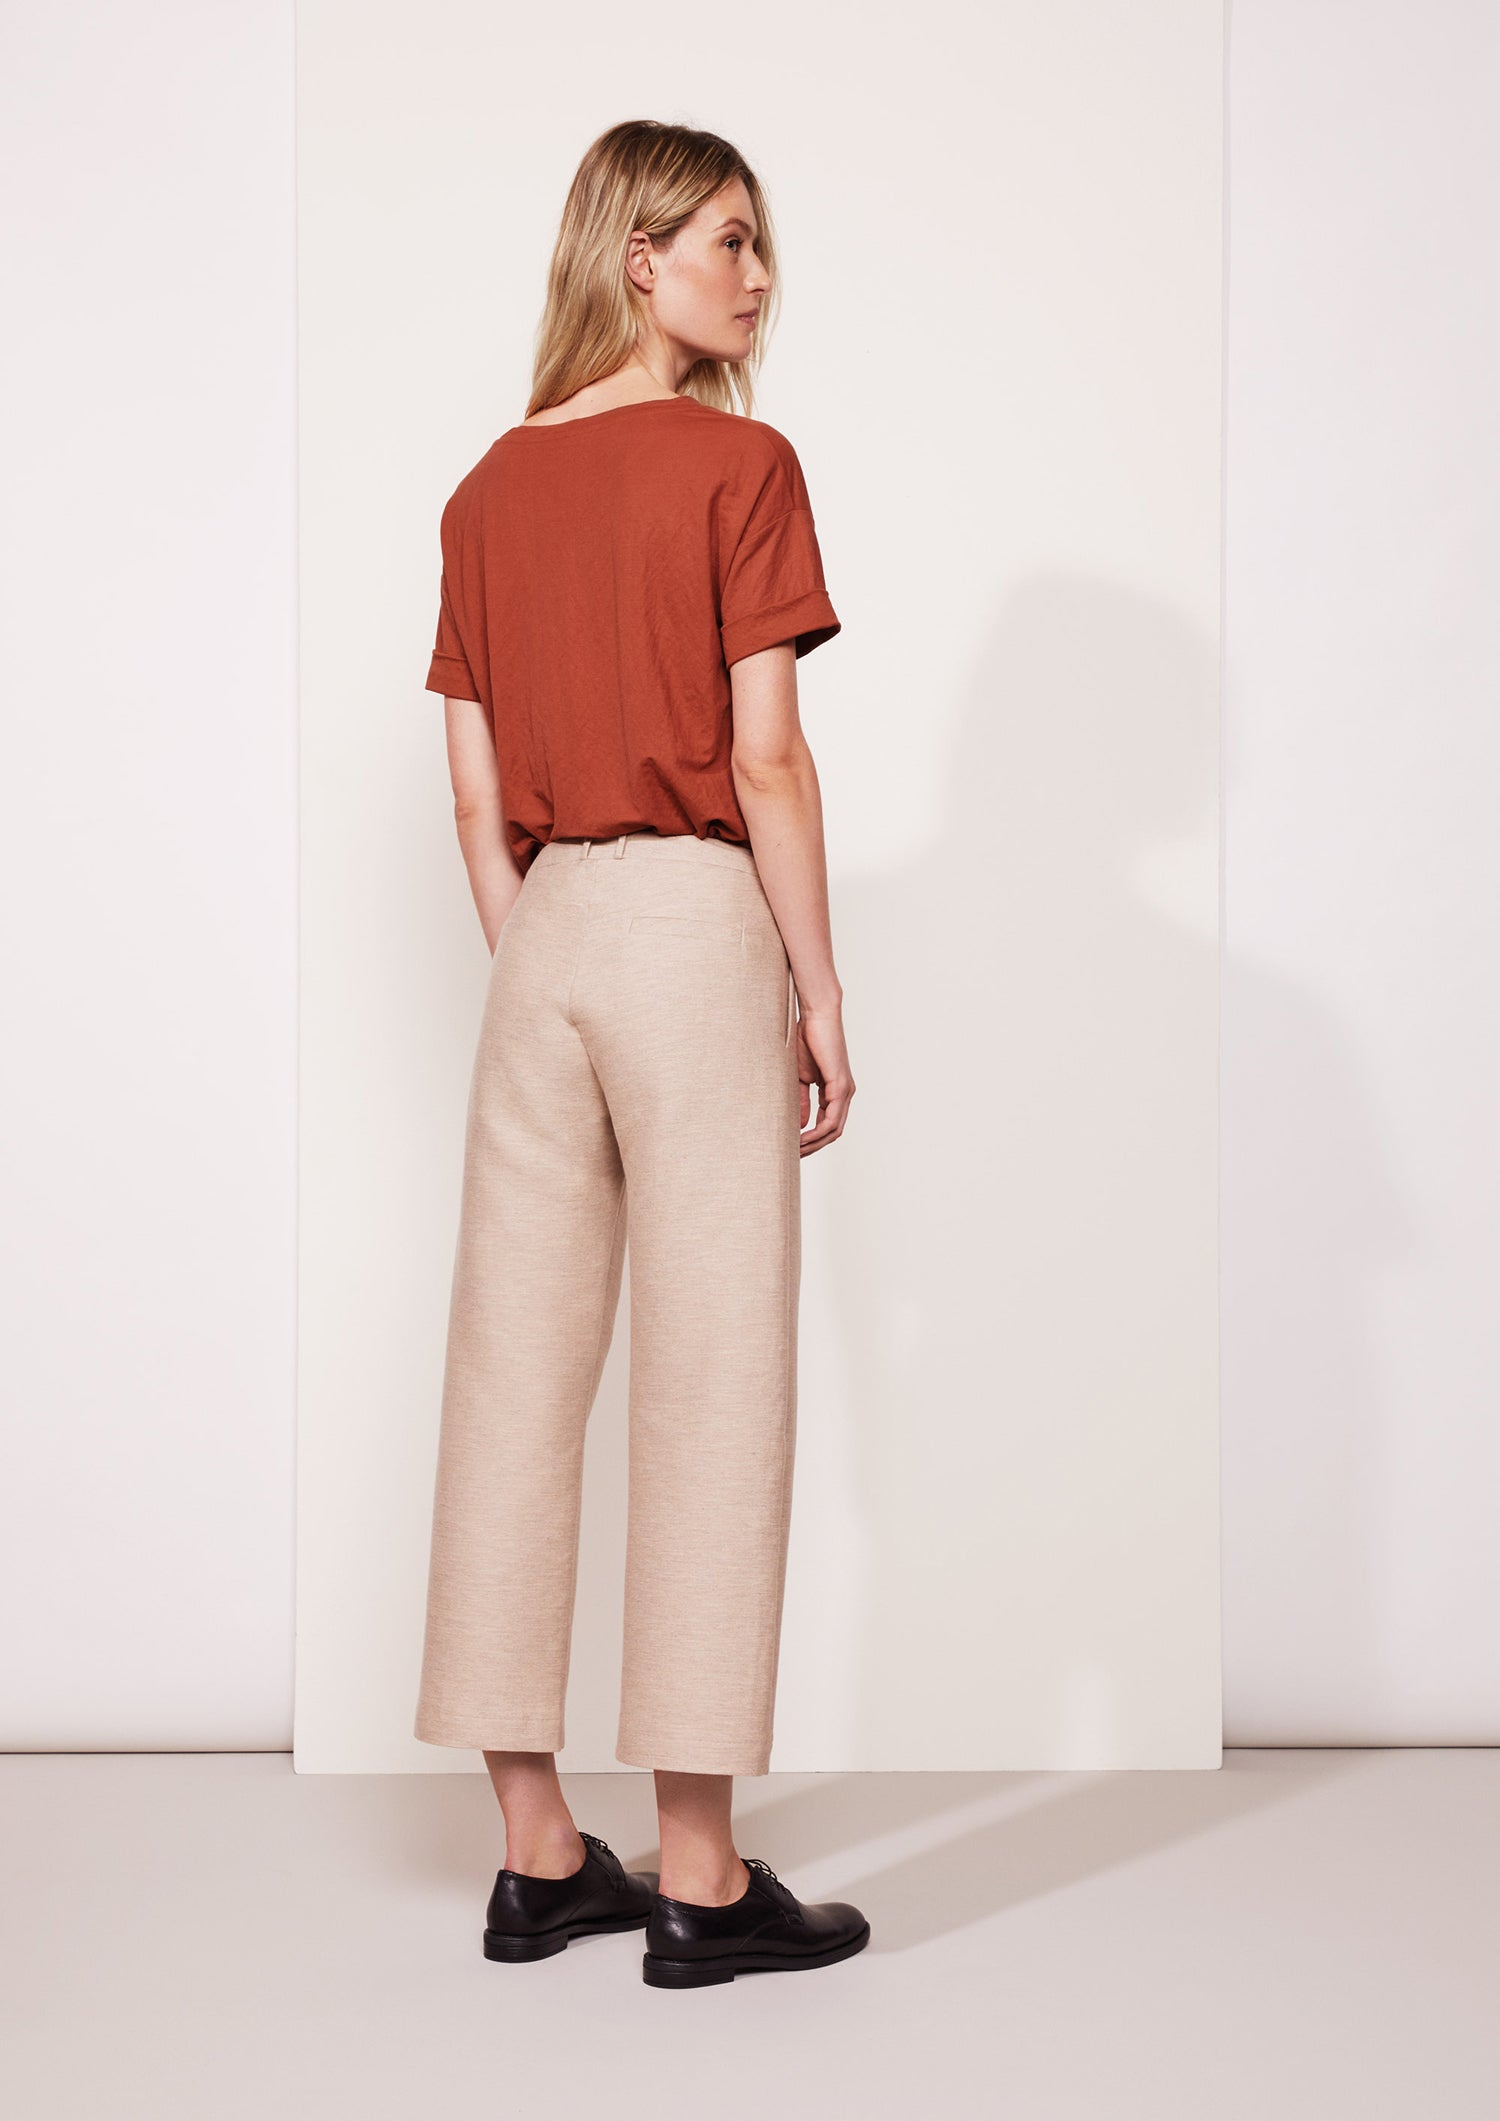 Top Tommie viscose jersey terracotta